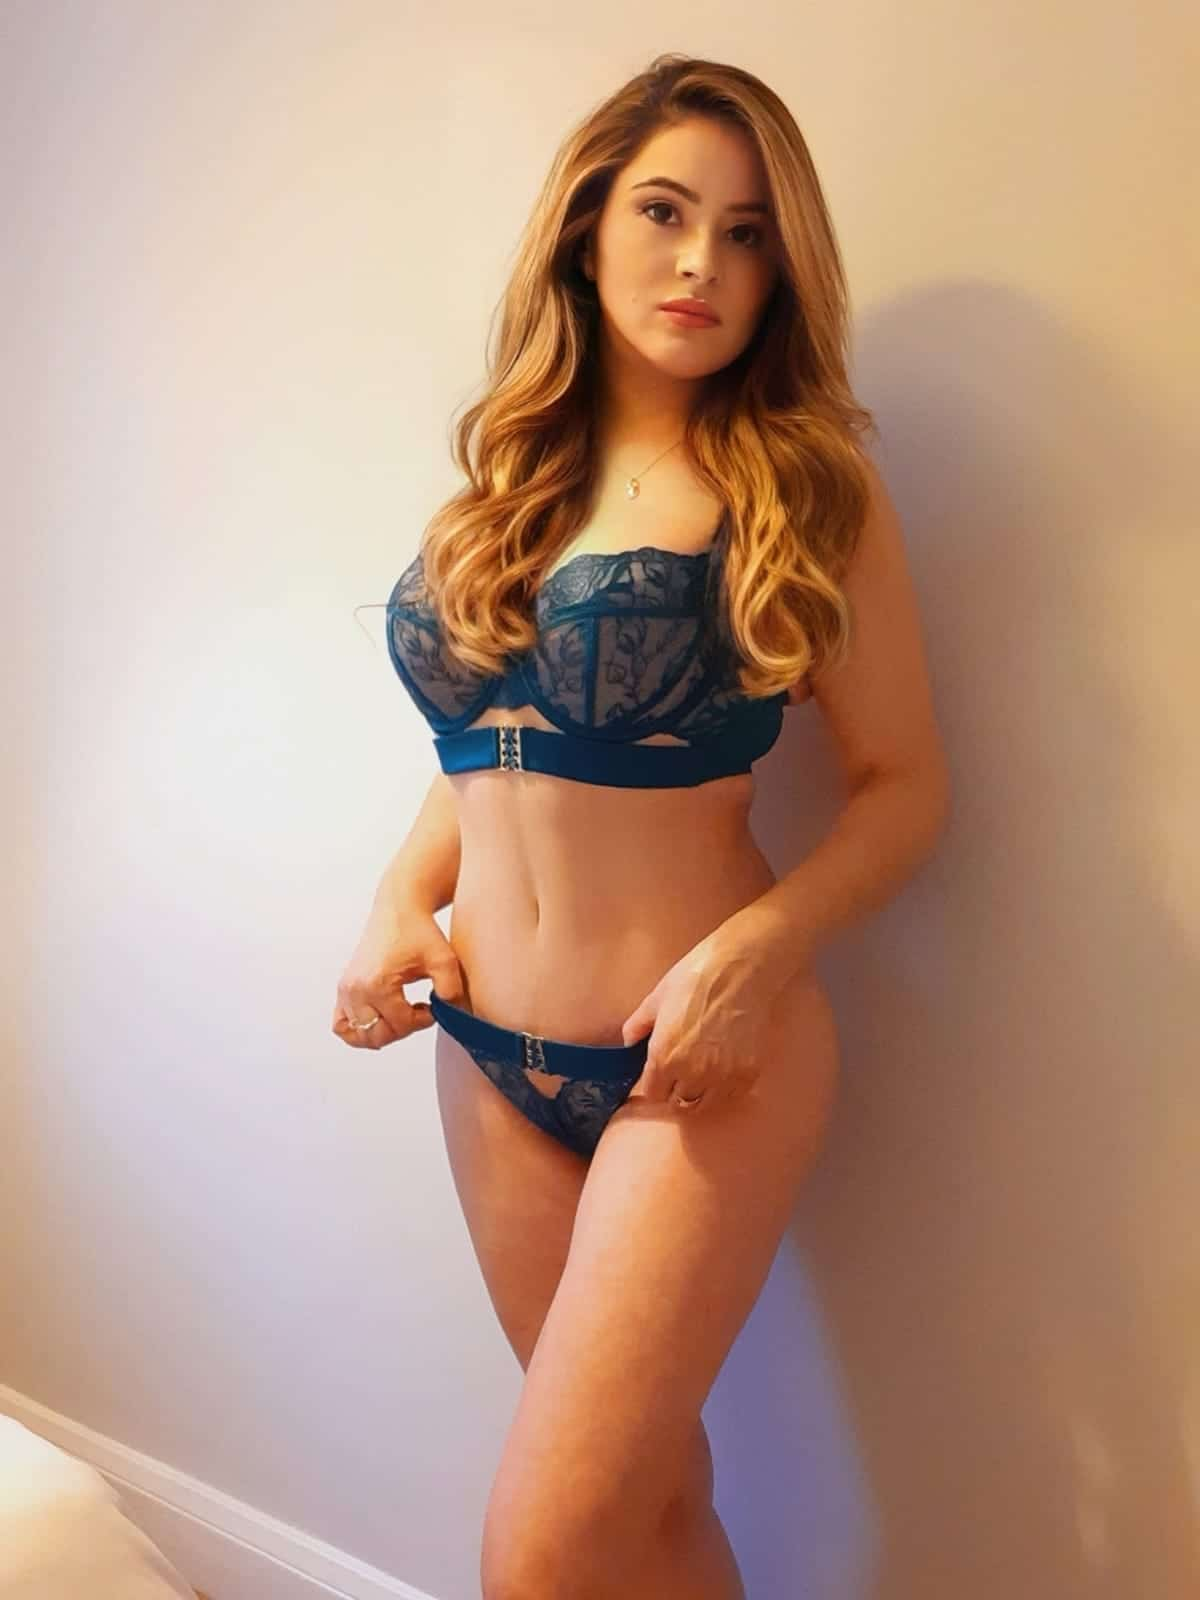 amira offers a real sexy massage service